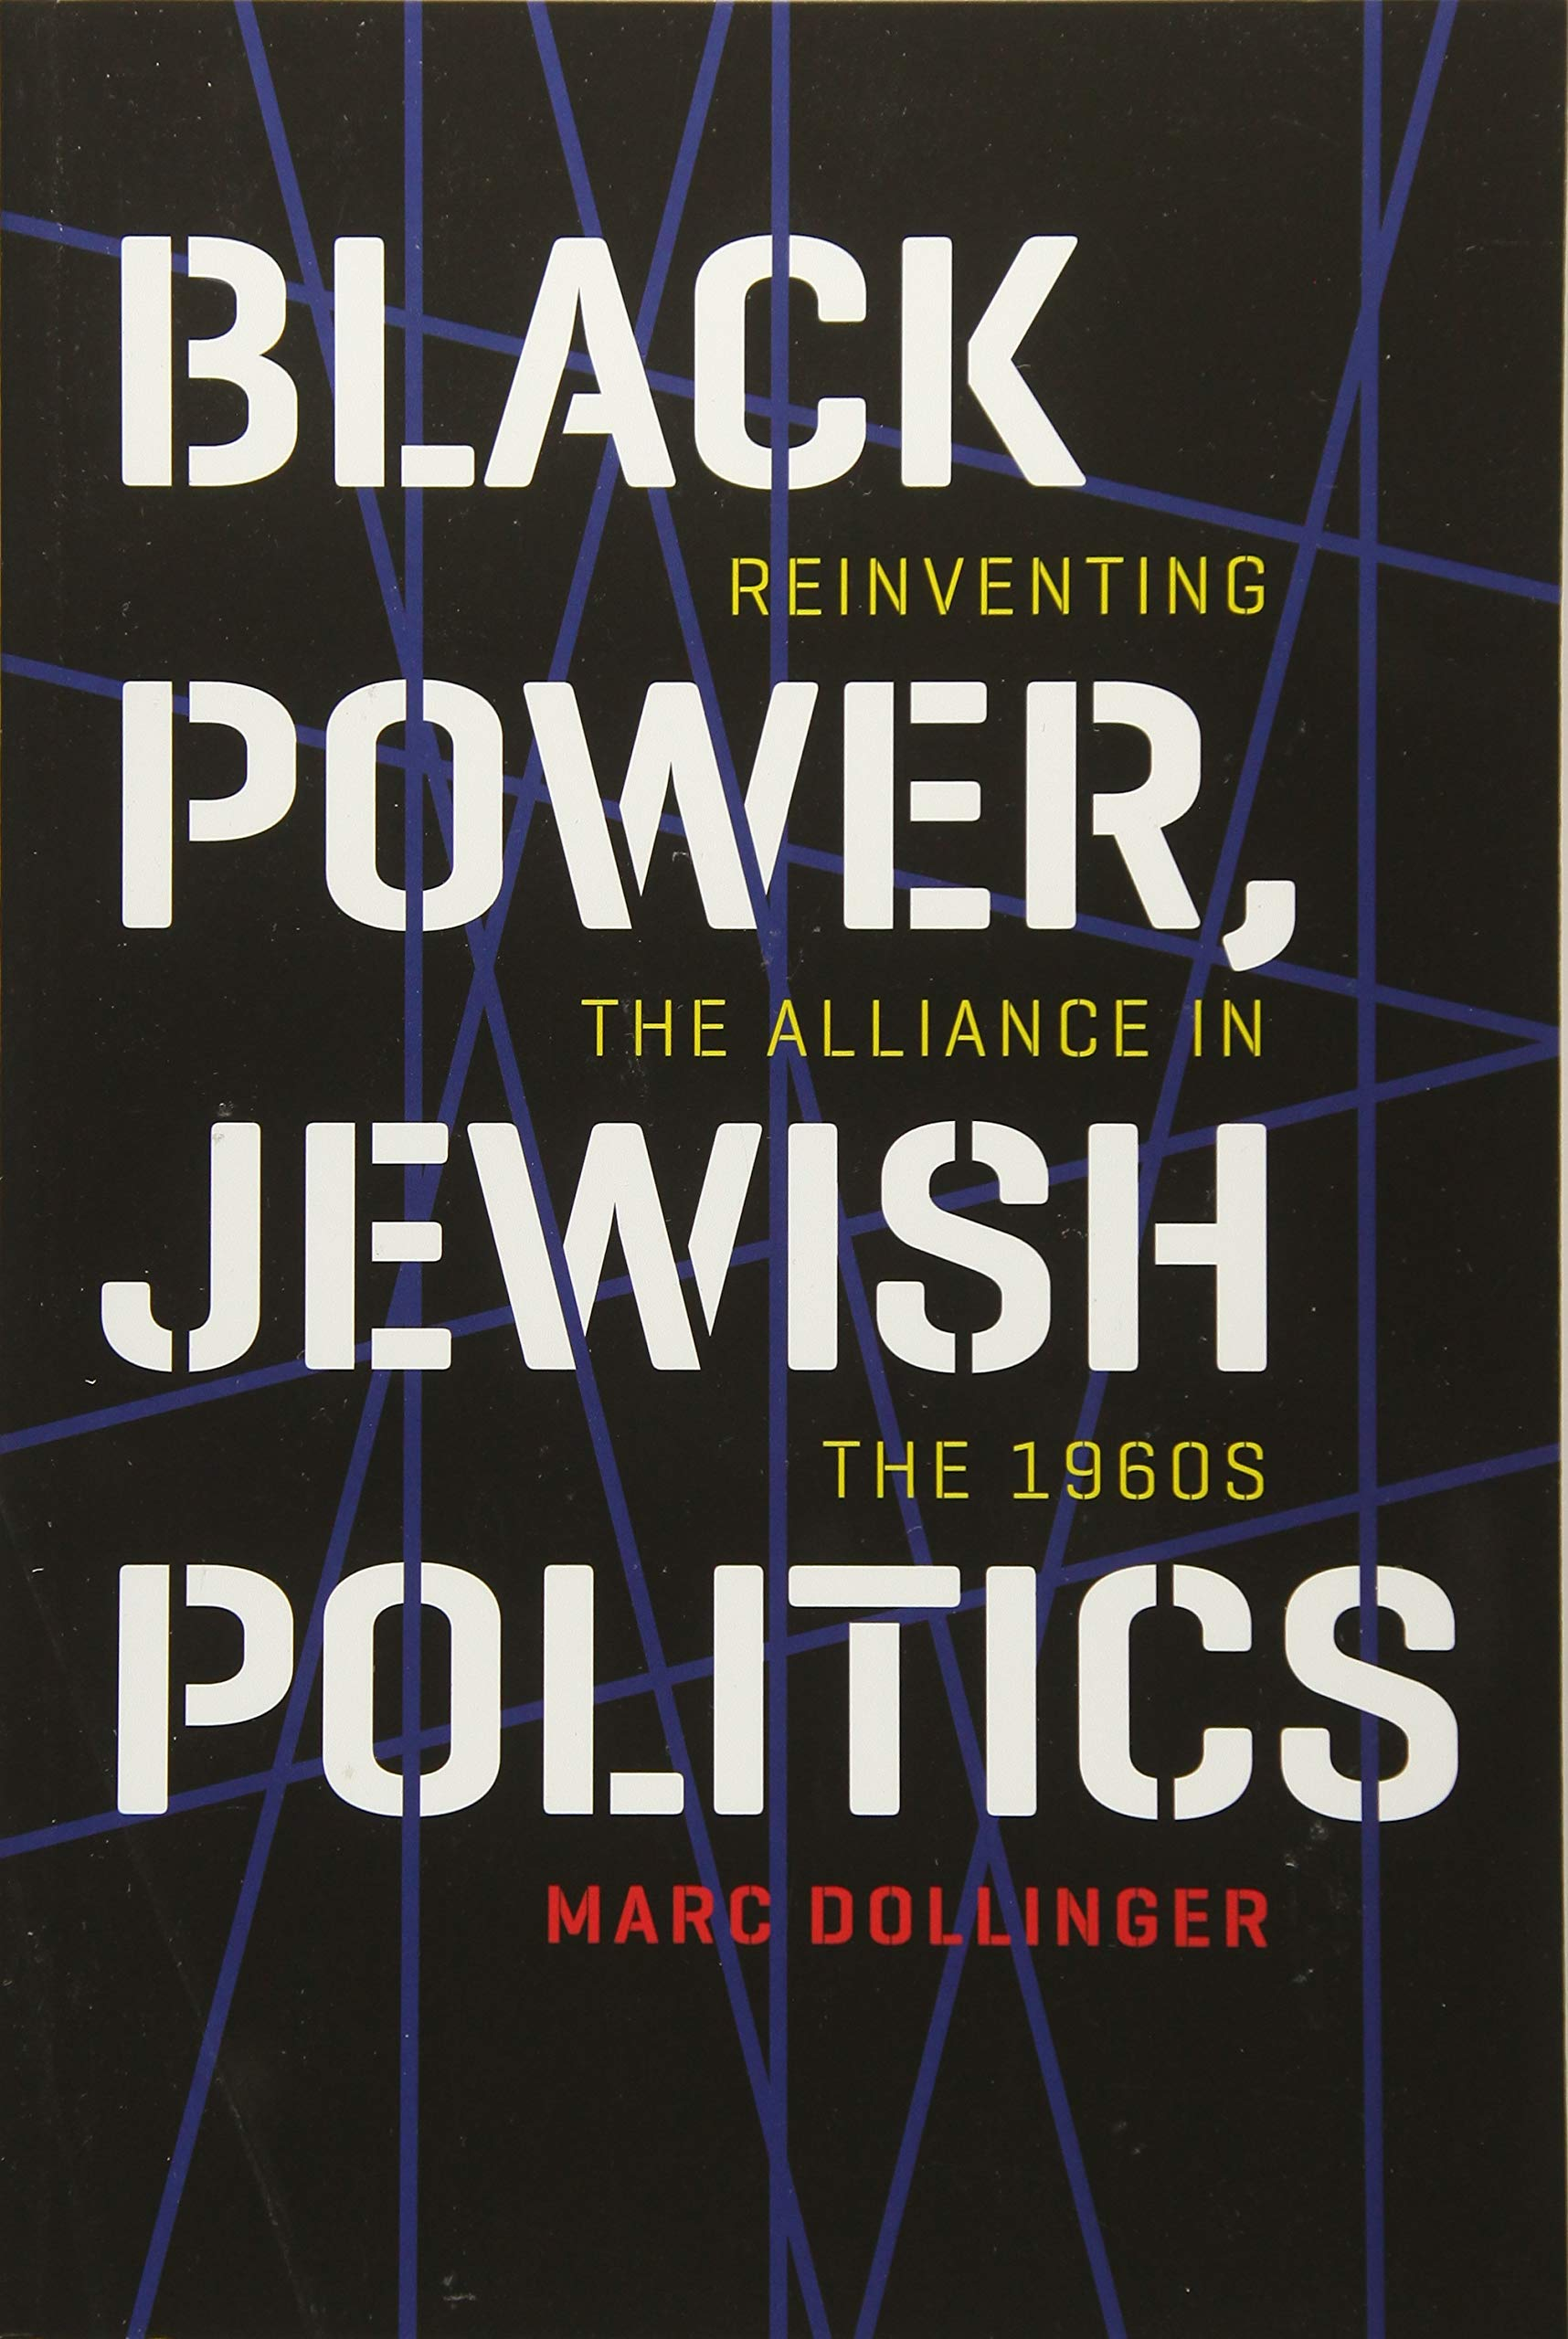 Black Power, Jewish Politics: Reinventing the Alliance within the Sixties (Brandeis Series in American Jewish History, Culture, and Life)